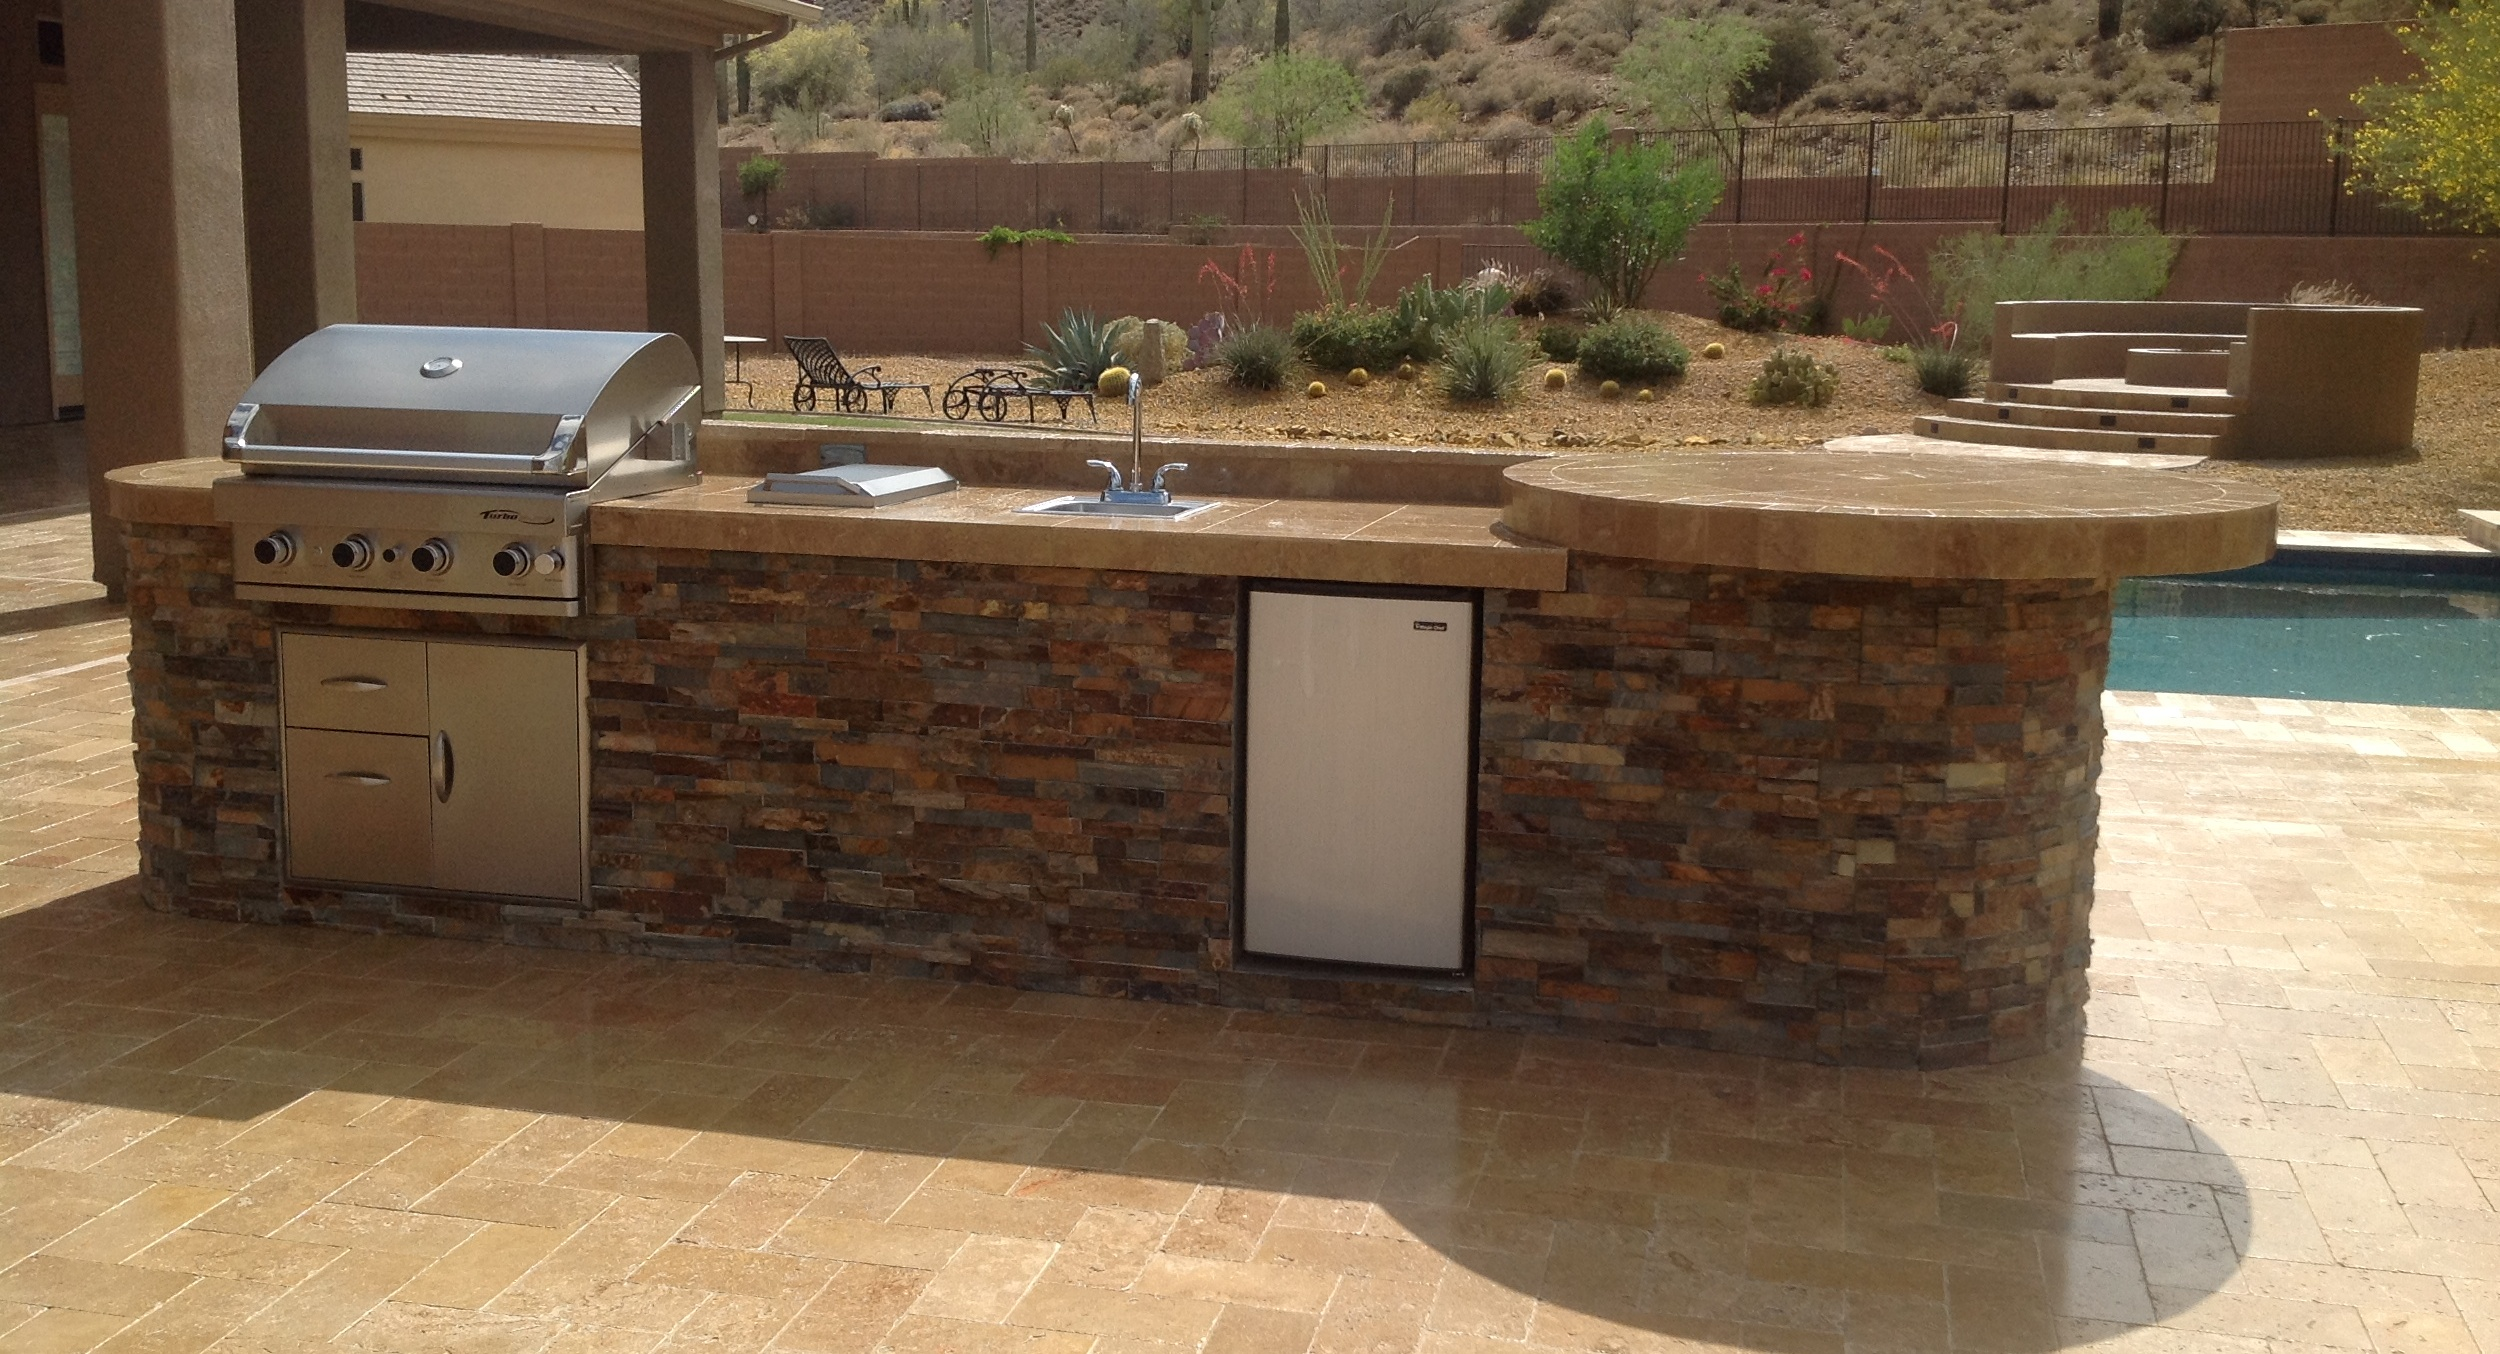 Travertine-Topped Stone Outdoor Kitchen, Anthem AZ